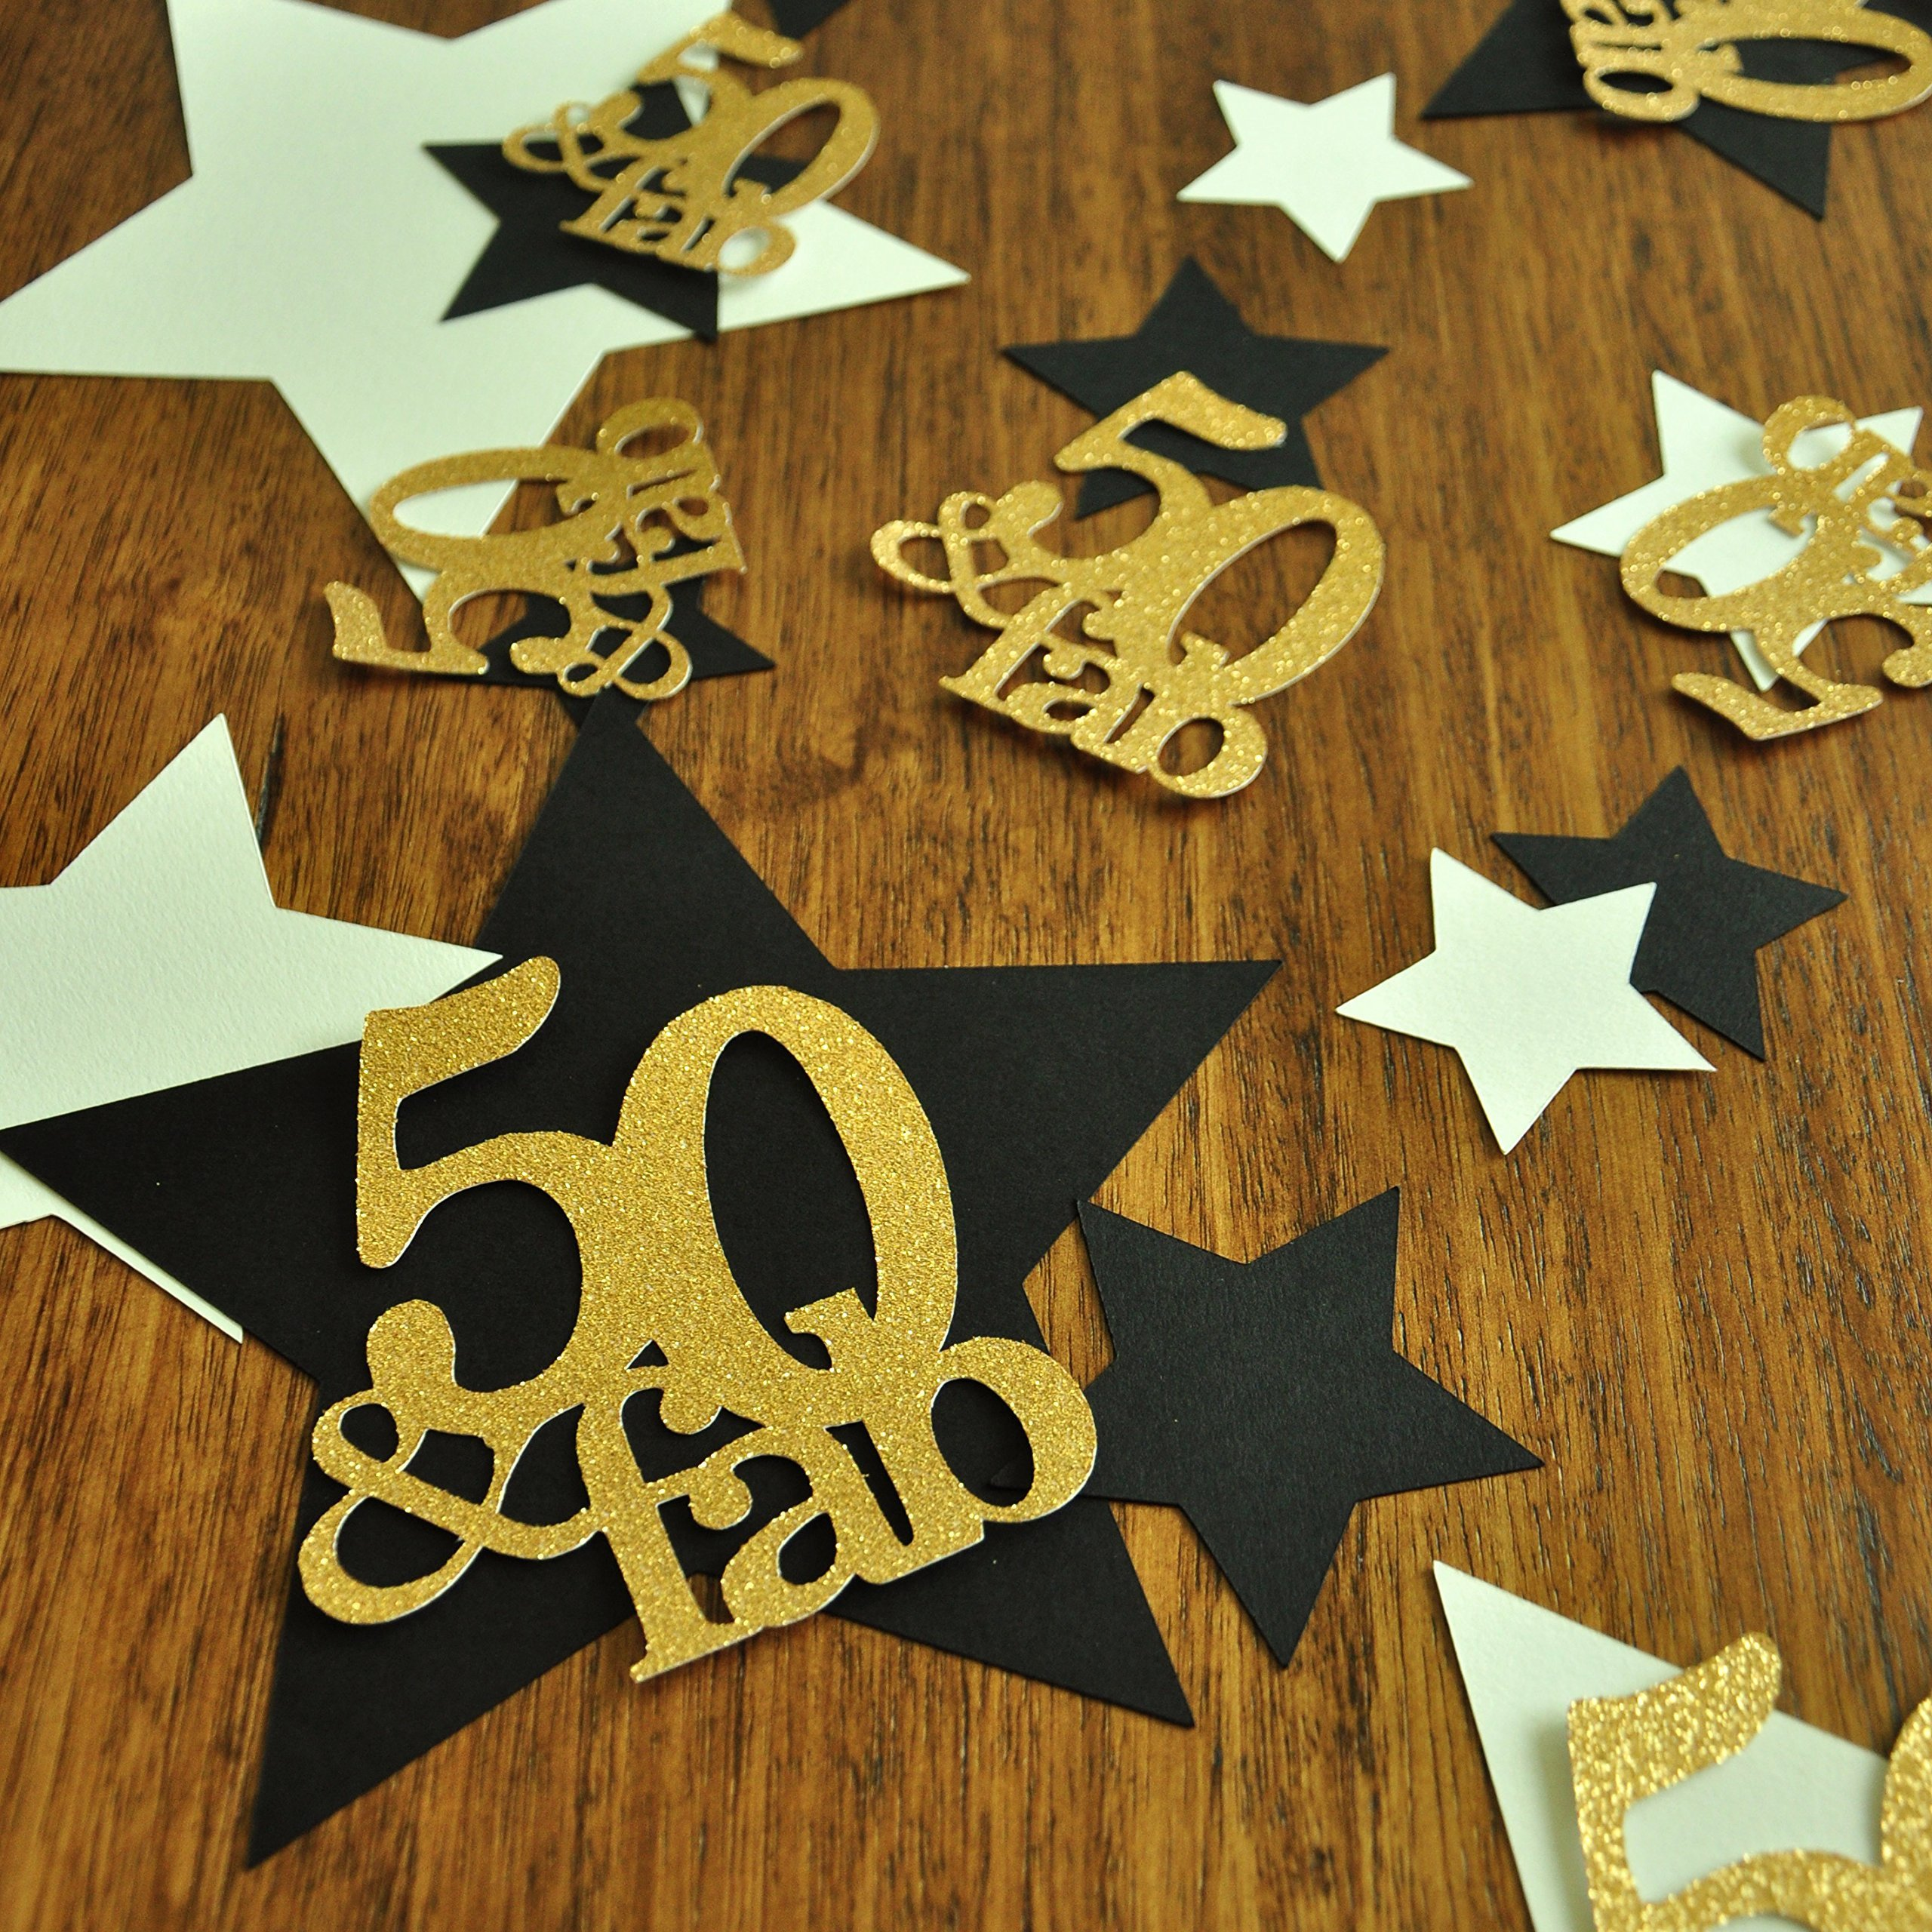 50 and Fabulous. 50th Birthday Decorations. 50 Birthday. Star Confetti. Large Table Confetti. 36CT.